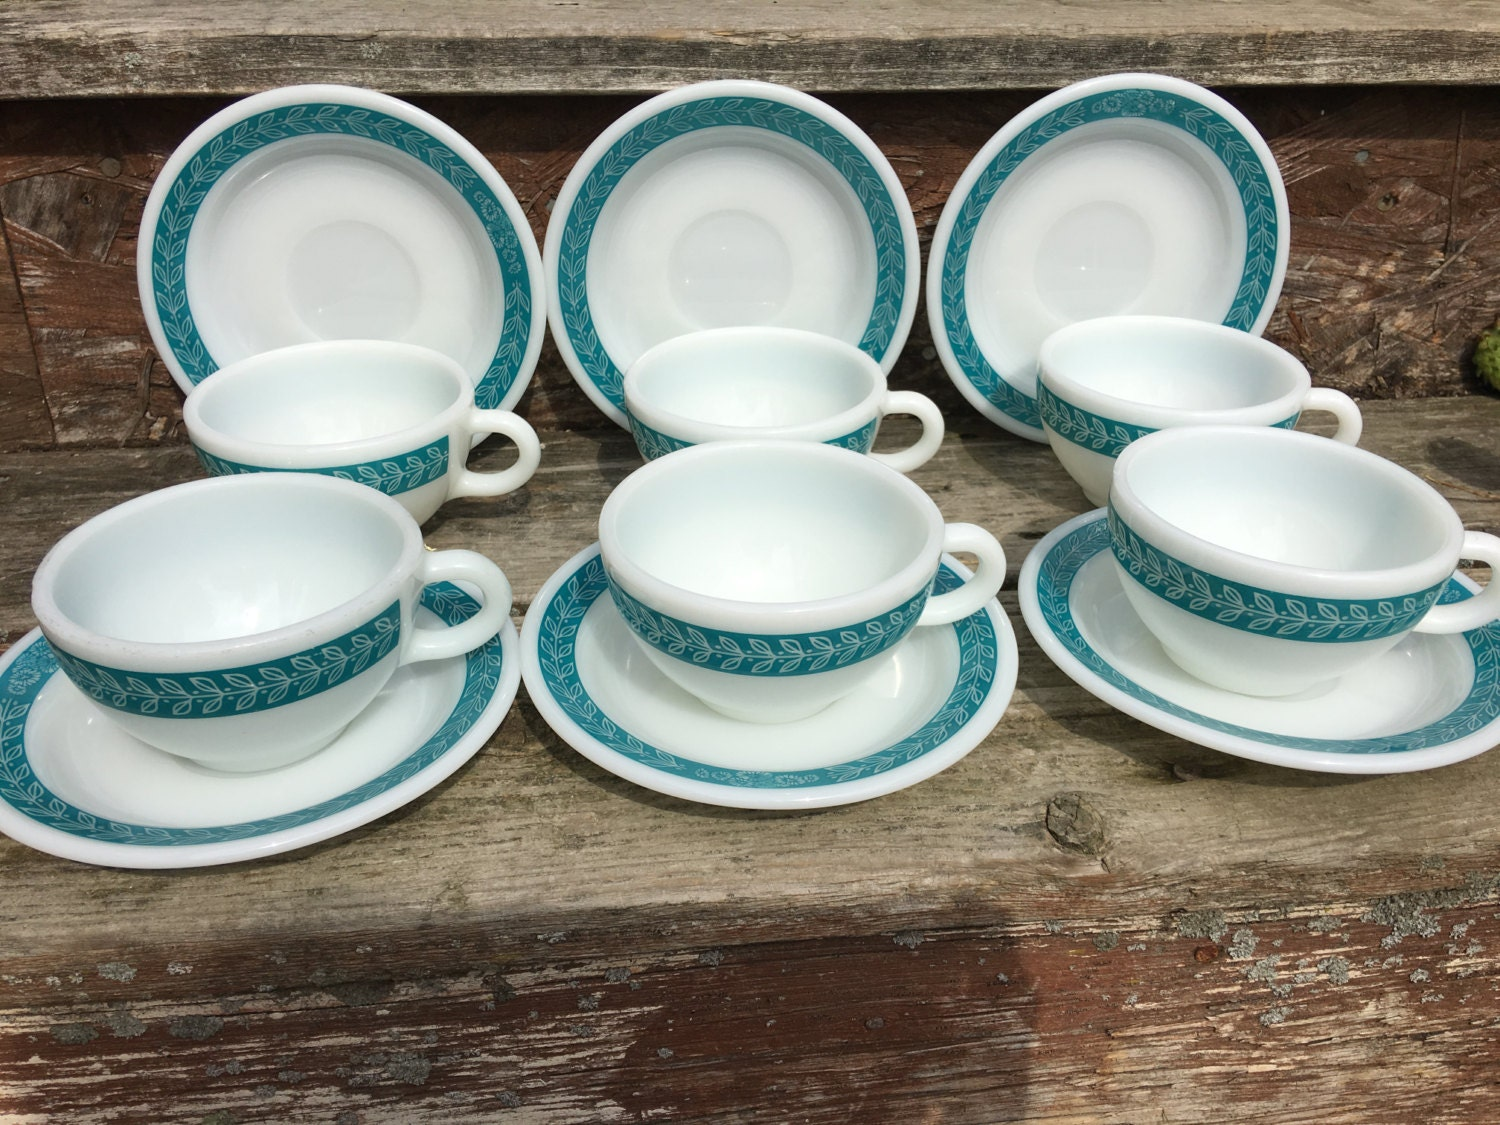 Vintage Pyrex Bluegrass Laurel Teal Heavy Duty Cup and Saucer Set of 6 Laurel Leaves Rim Dinnerware Restaurant Style White and Turquoise & Vintage Pyrex Bluegrass Laurel Teal Heavy Duty Cup and Saucer Set of ...